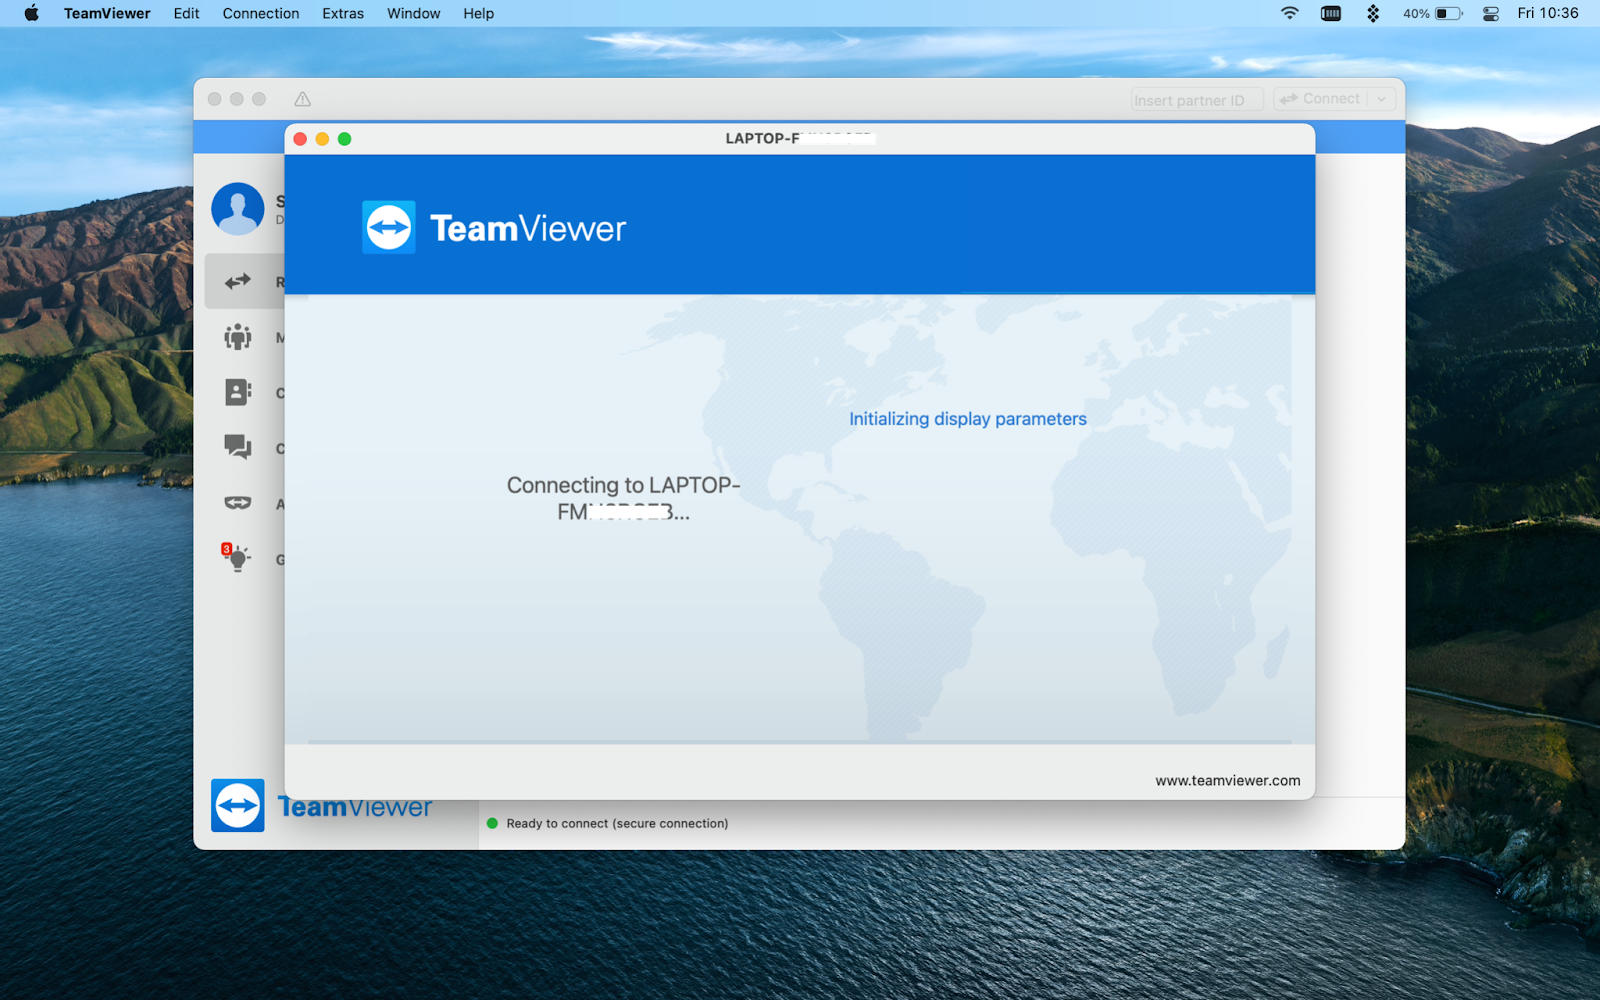 teamviewer-connecting